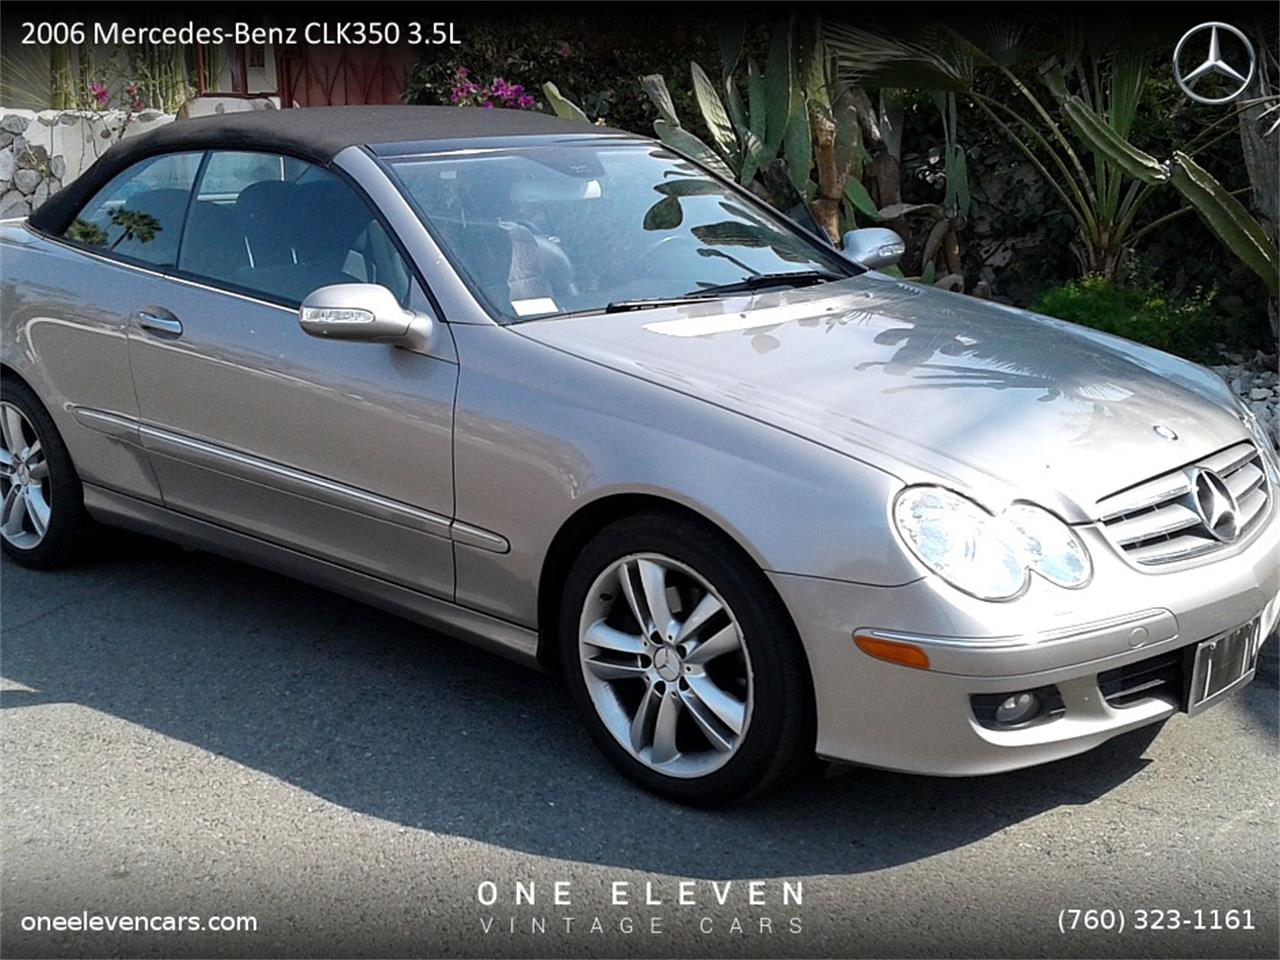 service manual  old car manuals online 2006 mercedes benz clk class electronic toll collection 2009 kia rondo repair manual 2009 Kia Rondo Inside